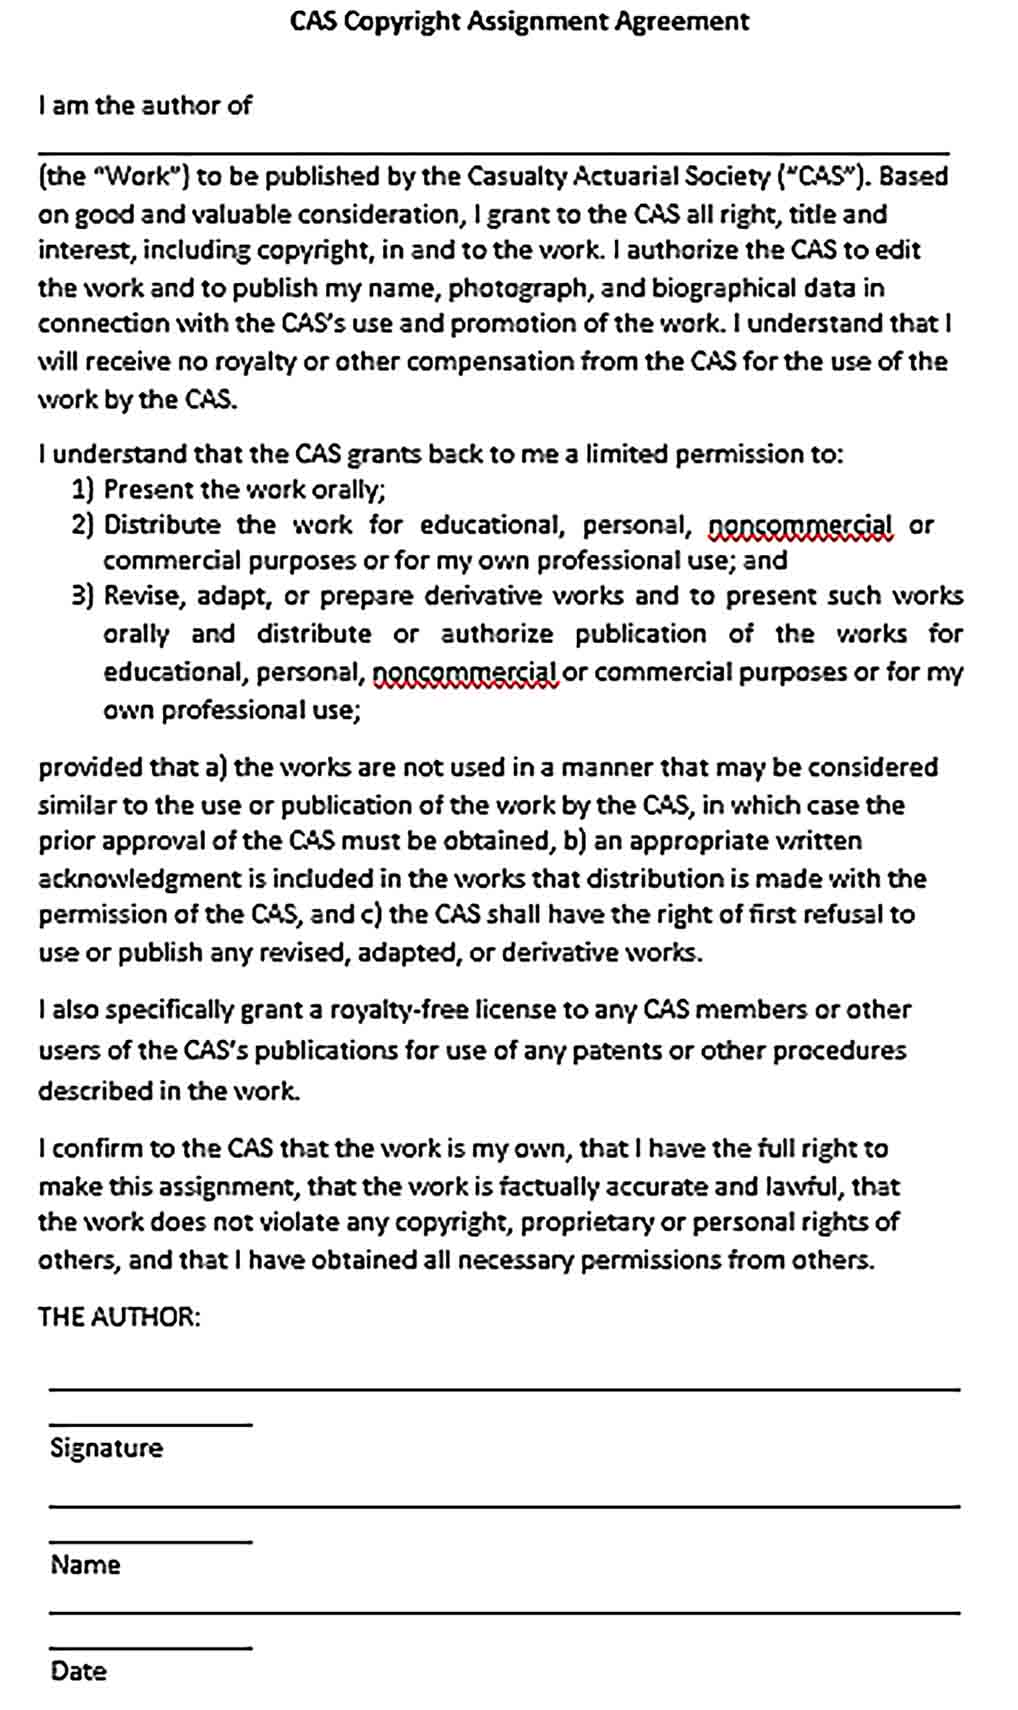 Sample Copyright Assignment Agreement